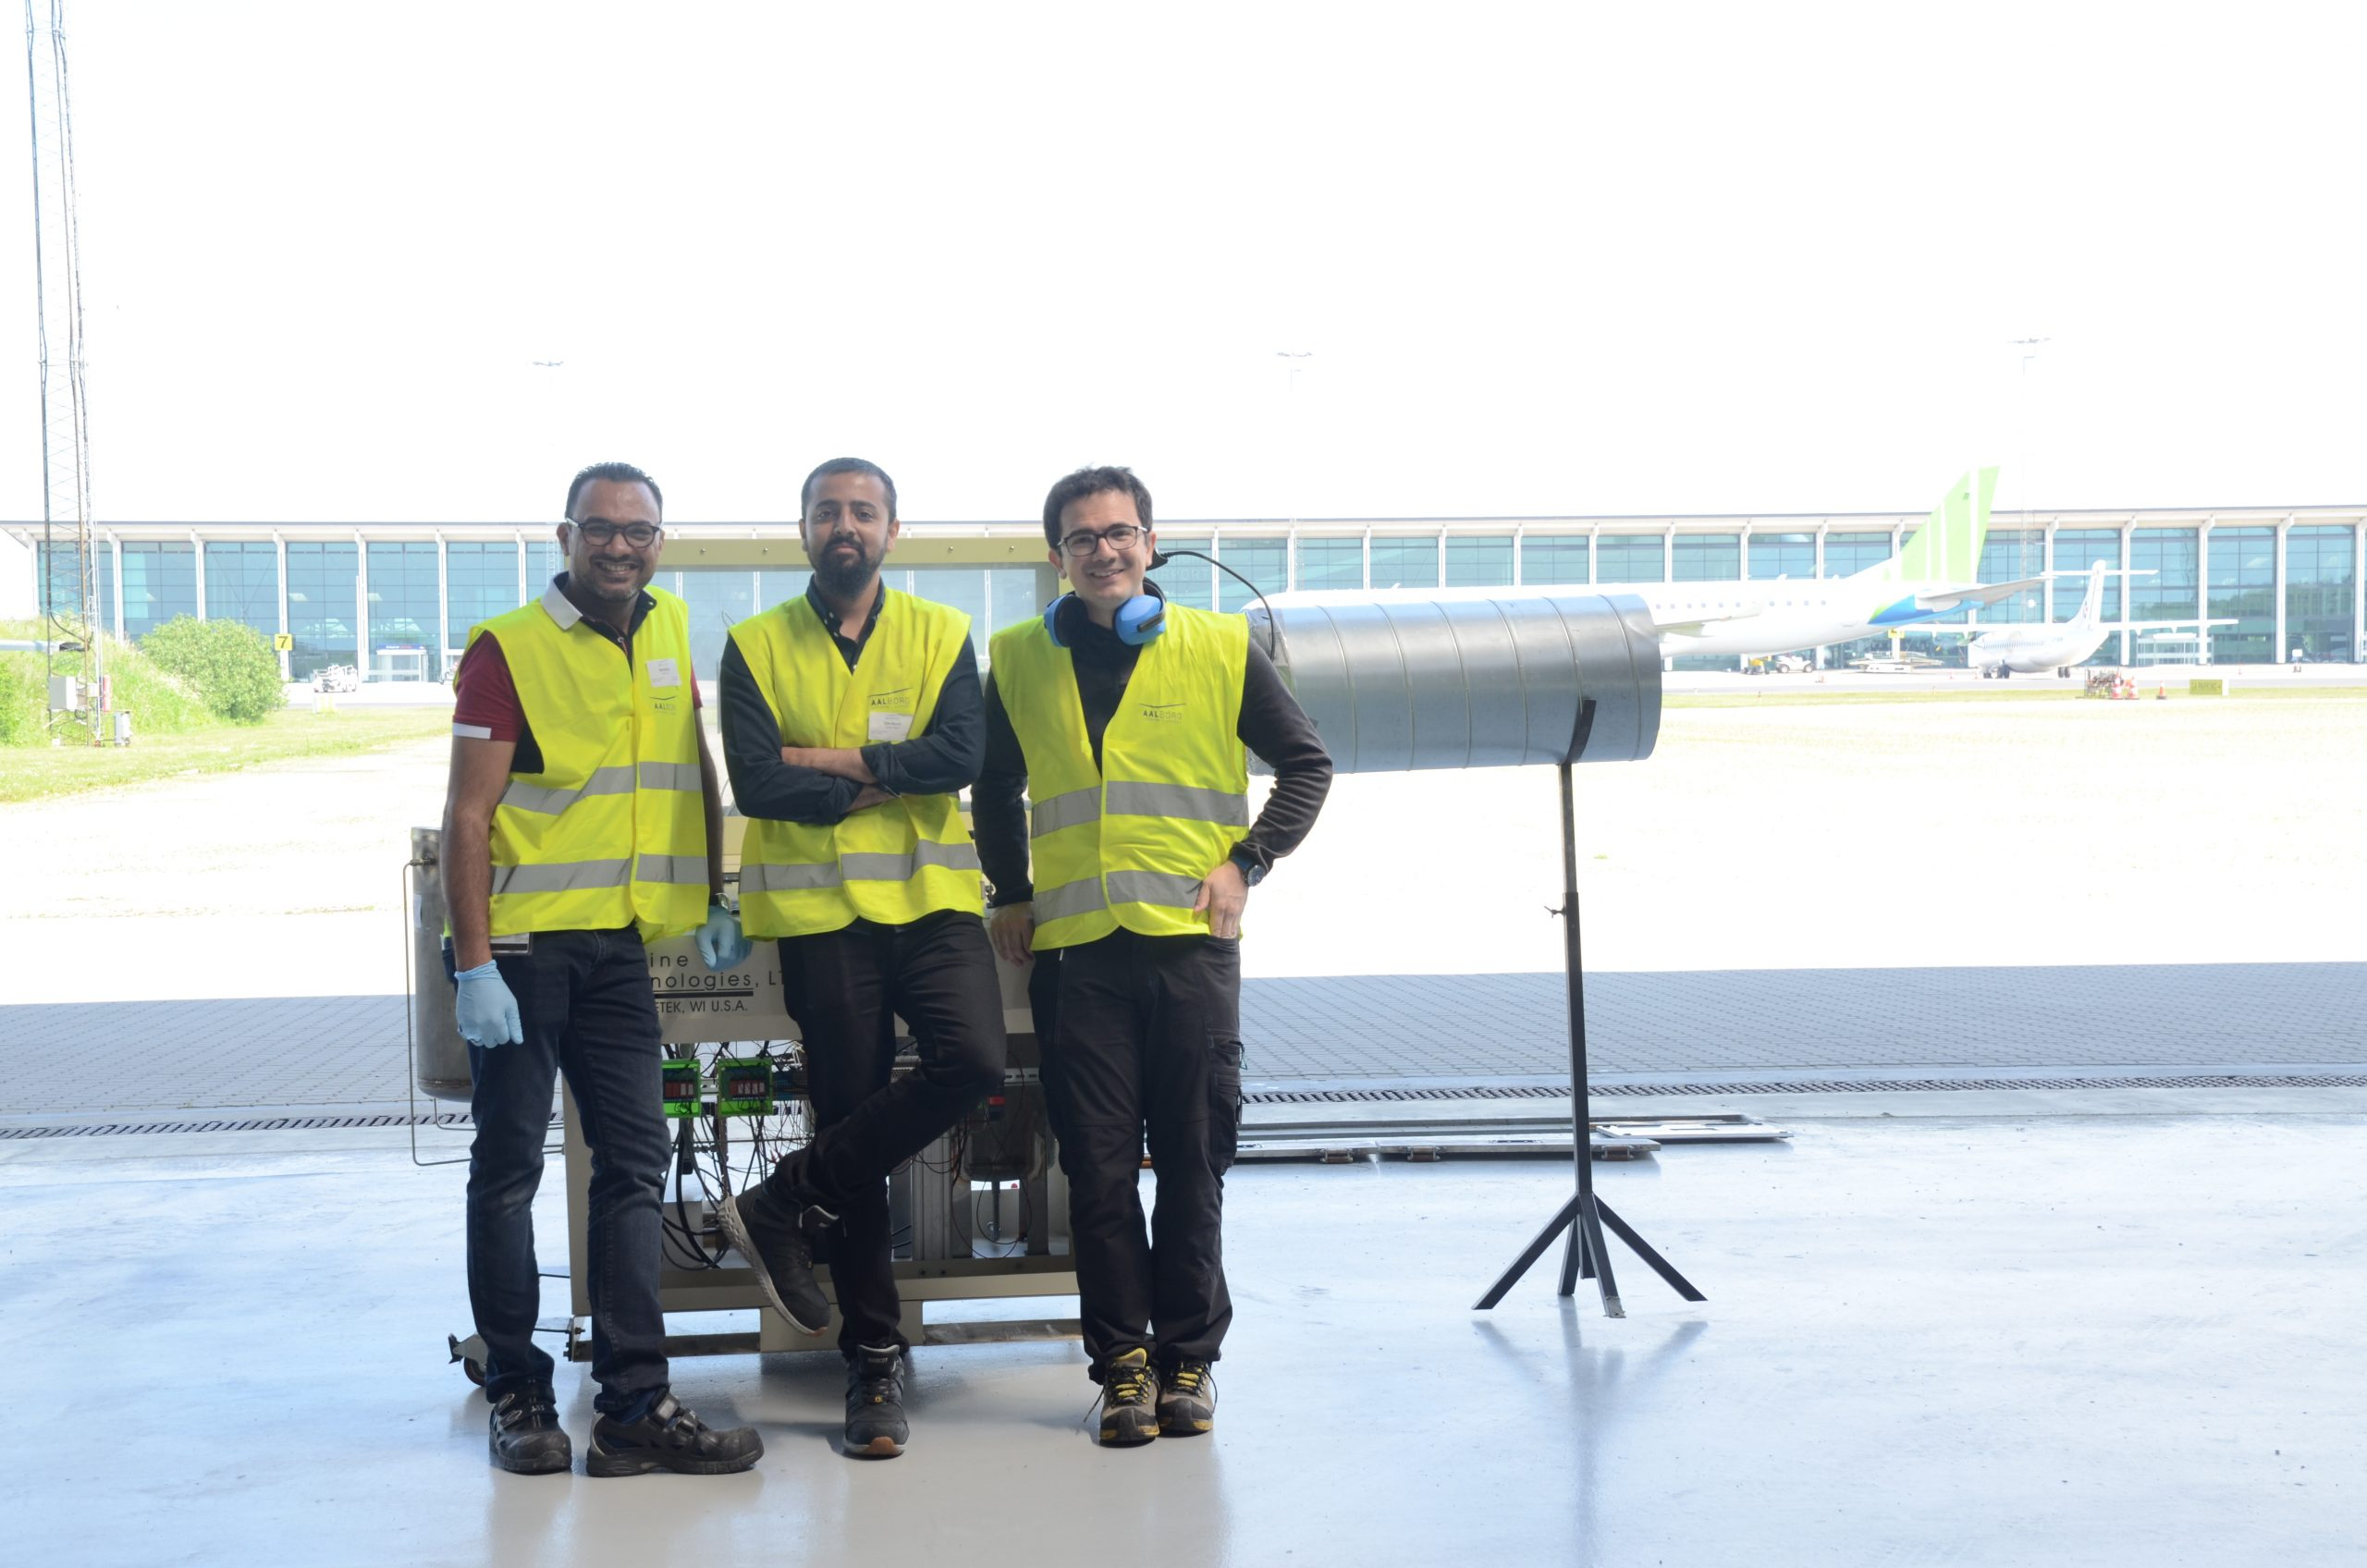 The research team at Aalborg University during the turbine test of the produced sustainable aviation fuel. Photo: Muhammad Salman Haider. Copyright: Aalborg University